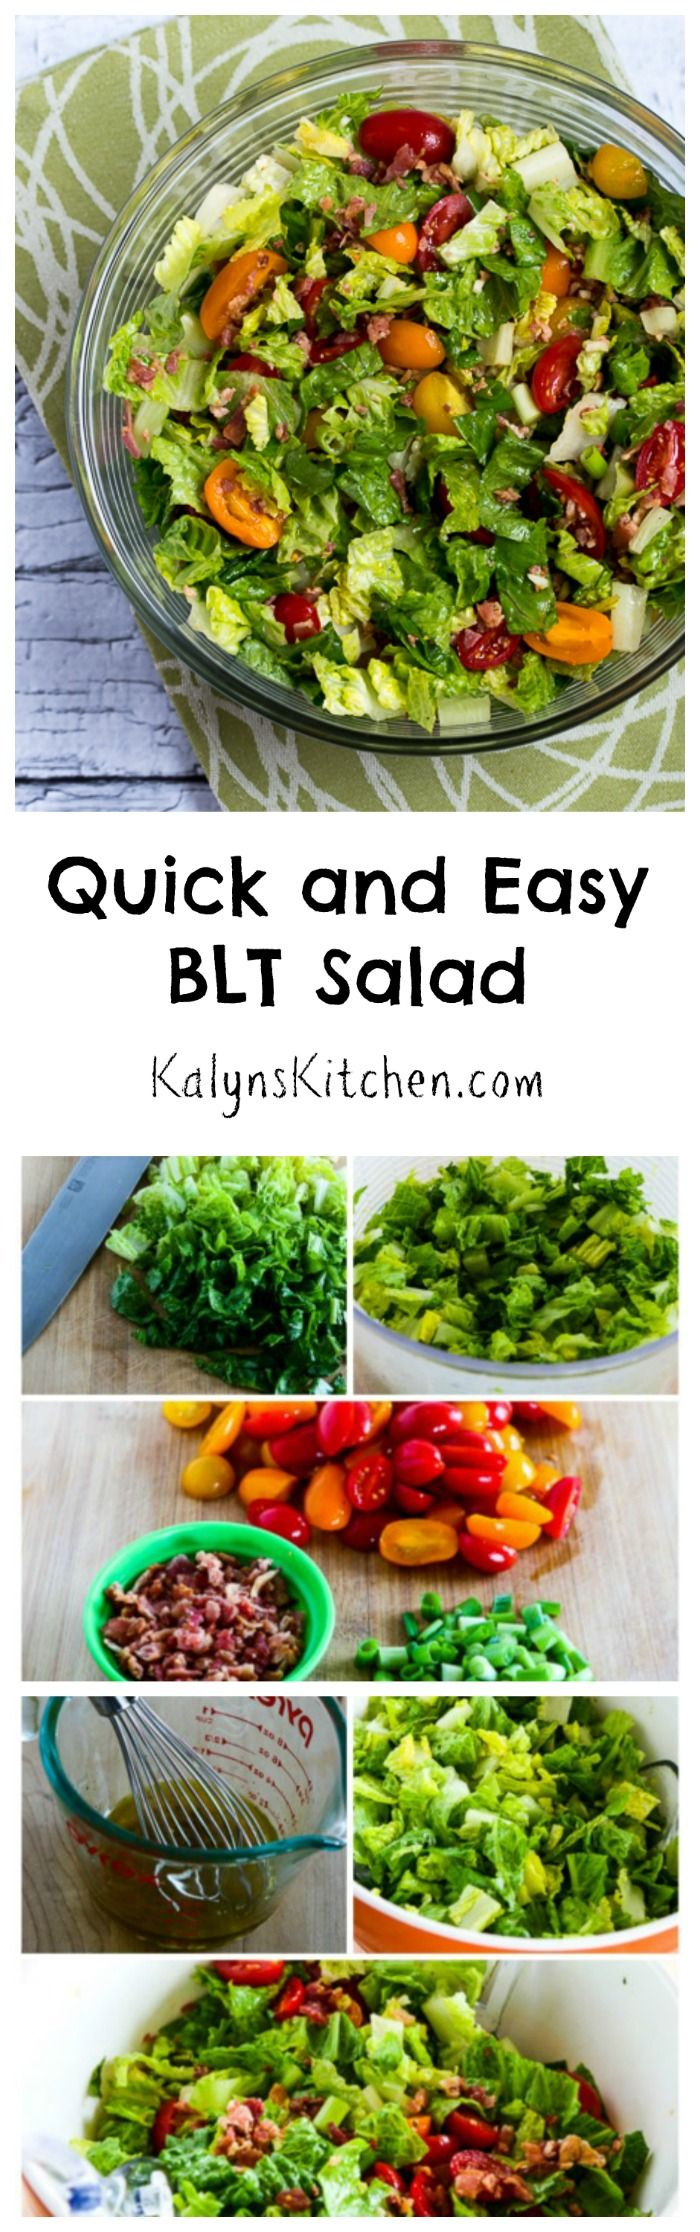 This Quick and Easy BLT Salad will be extra good if you have fresh garden tomatoes, and this salad is #LowCarb, #GlutenFree, and #Paleo. [from KalynsKitchen.com]